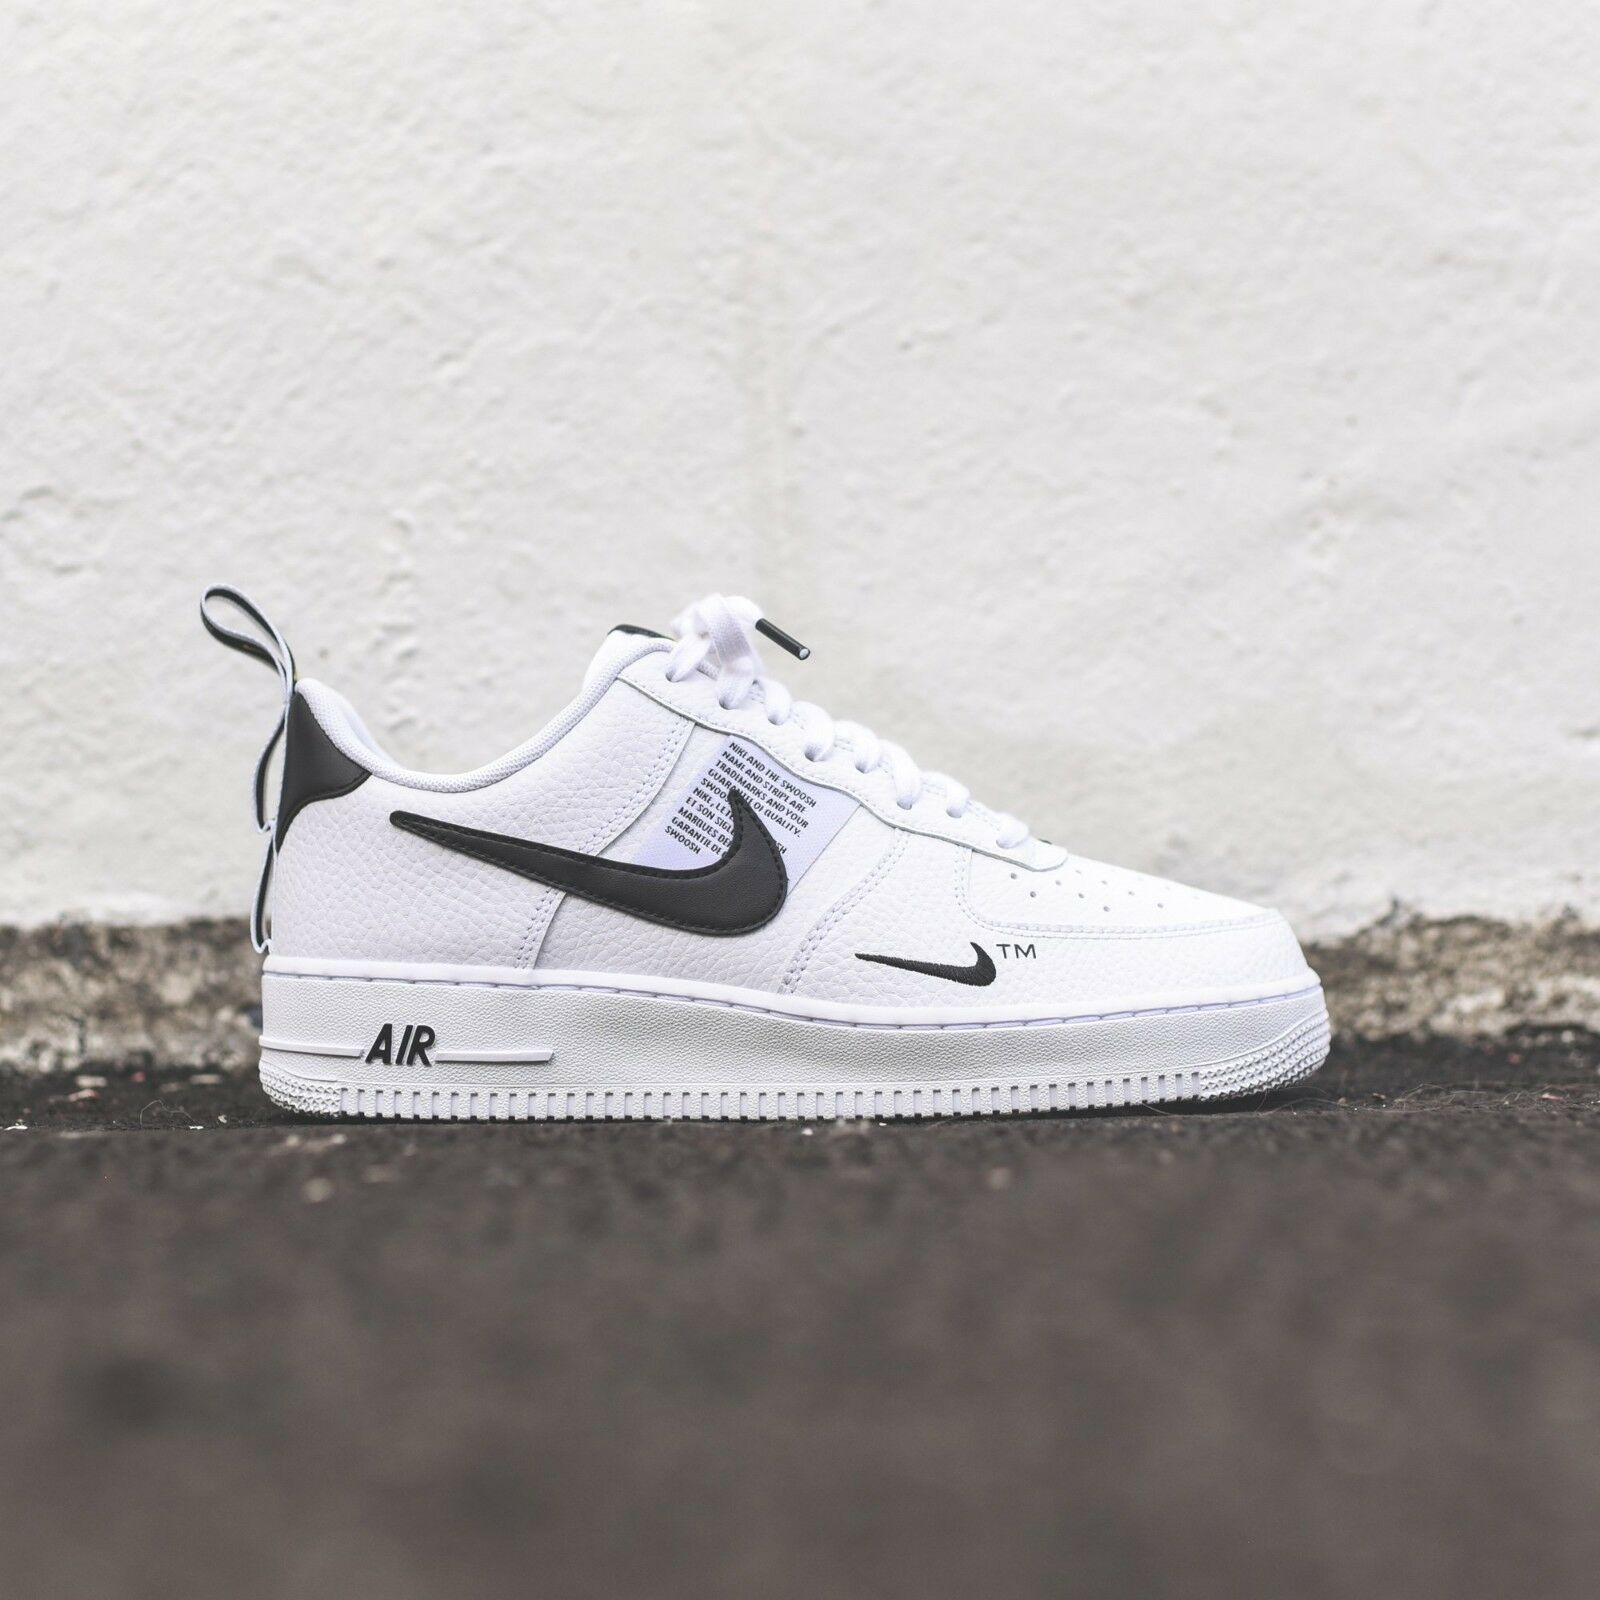 buy online 851f1 d3560 NIKEAIR FORCE 1 ONE UTILITY LOW UK US 7 8 8.5 9 10 11 12 WHITE 07 LV8 ALL  SIZES